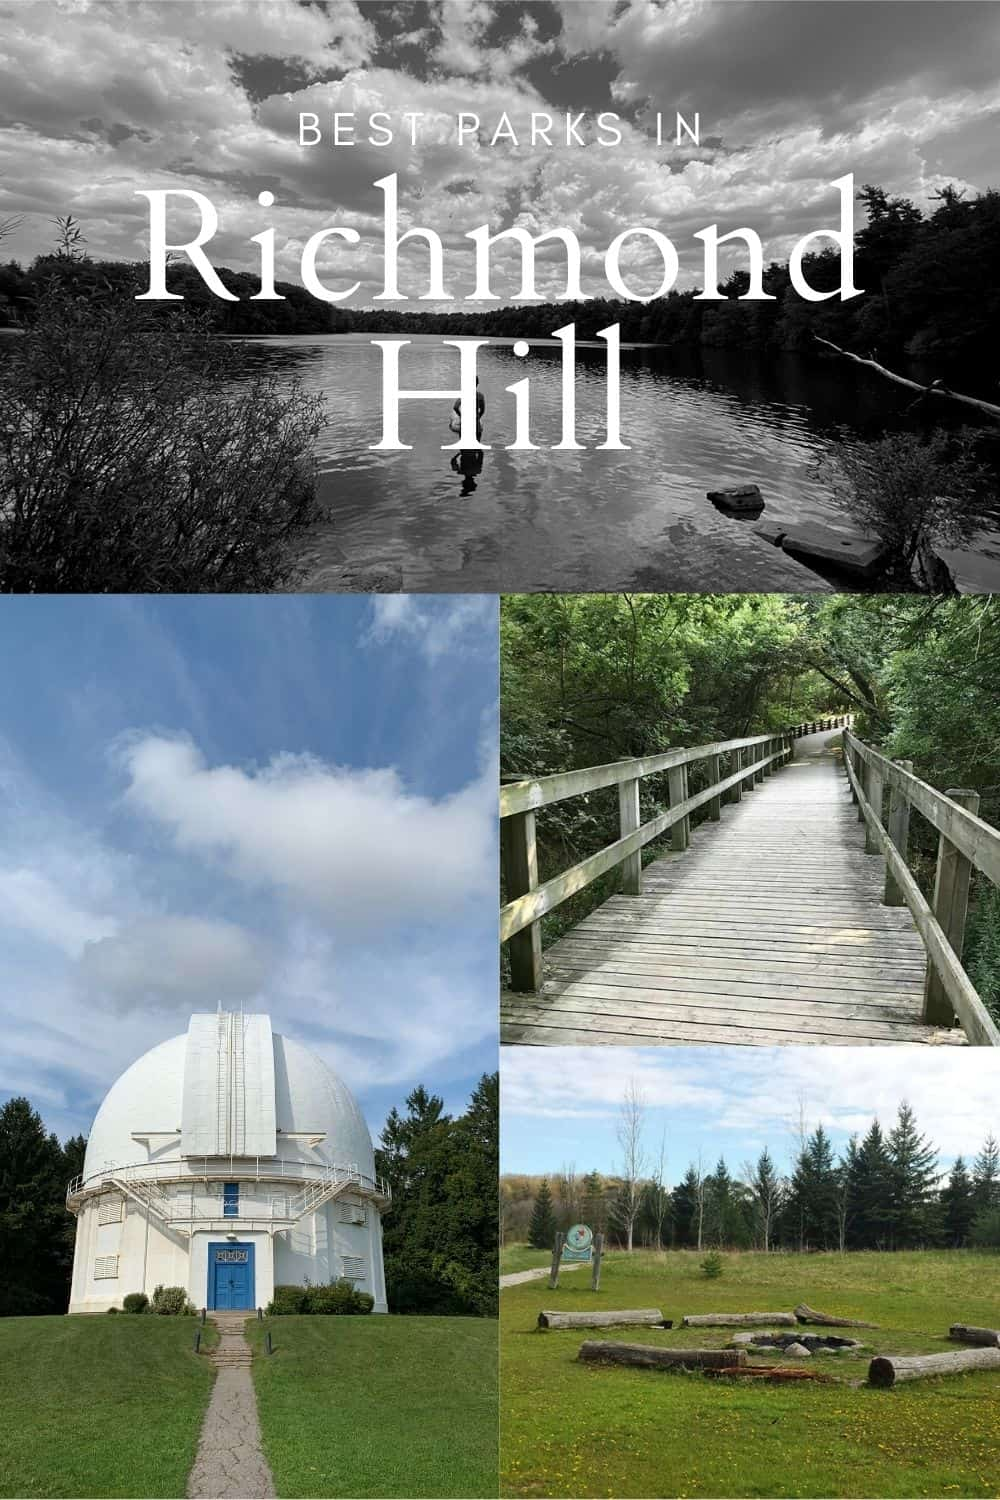 9 Best Parks in Richmond Hill Ontario For Easy Walks and Hikes